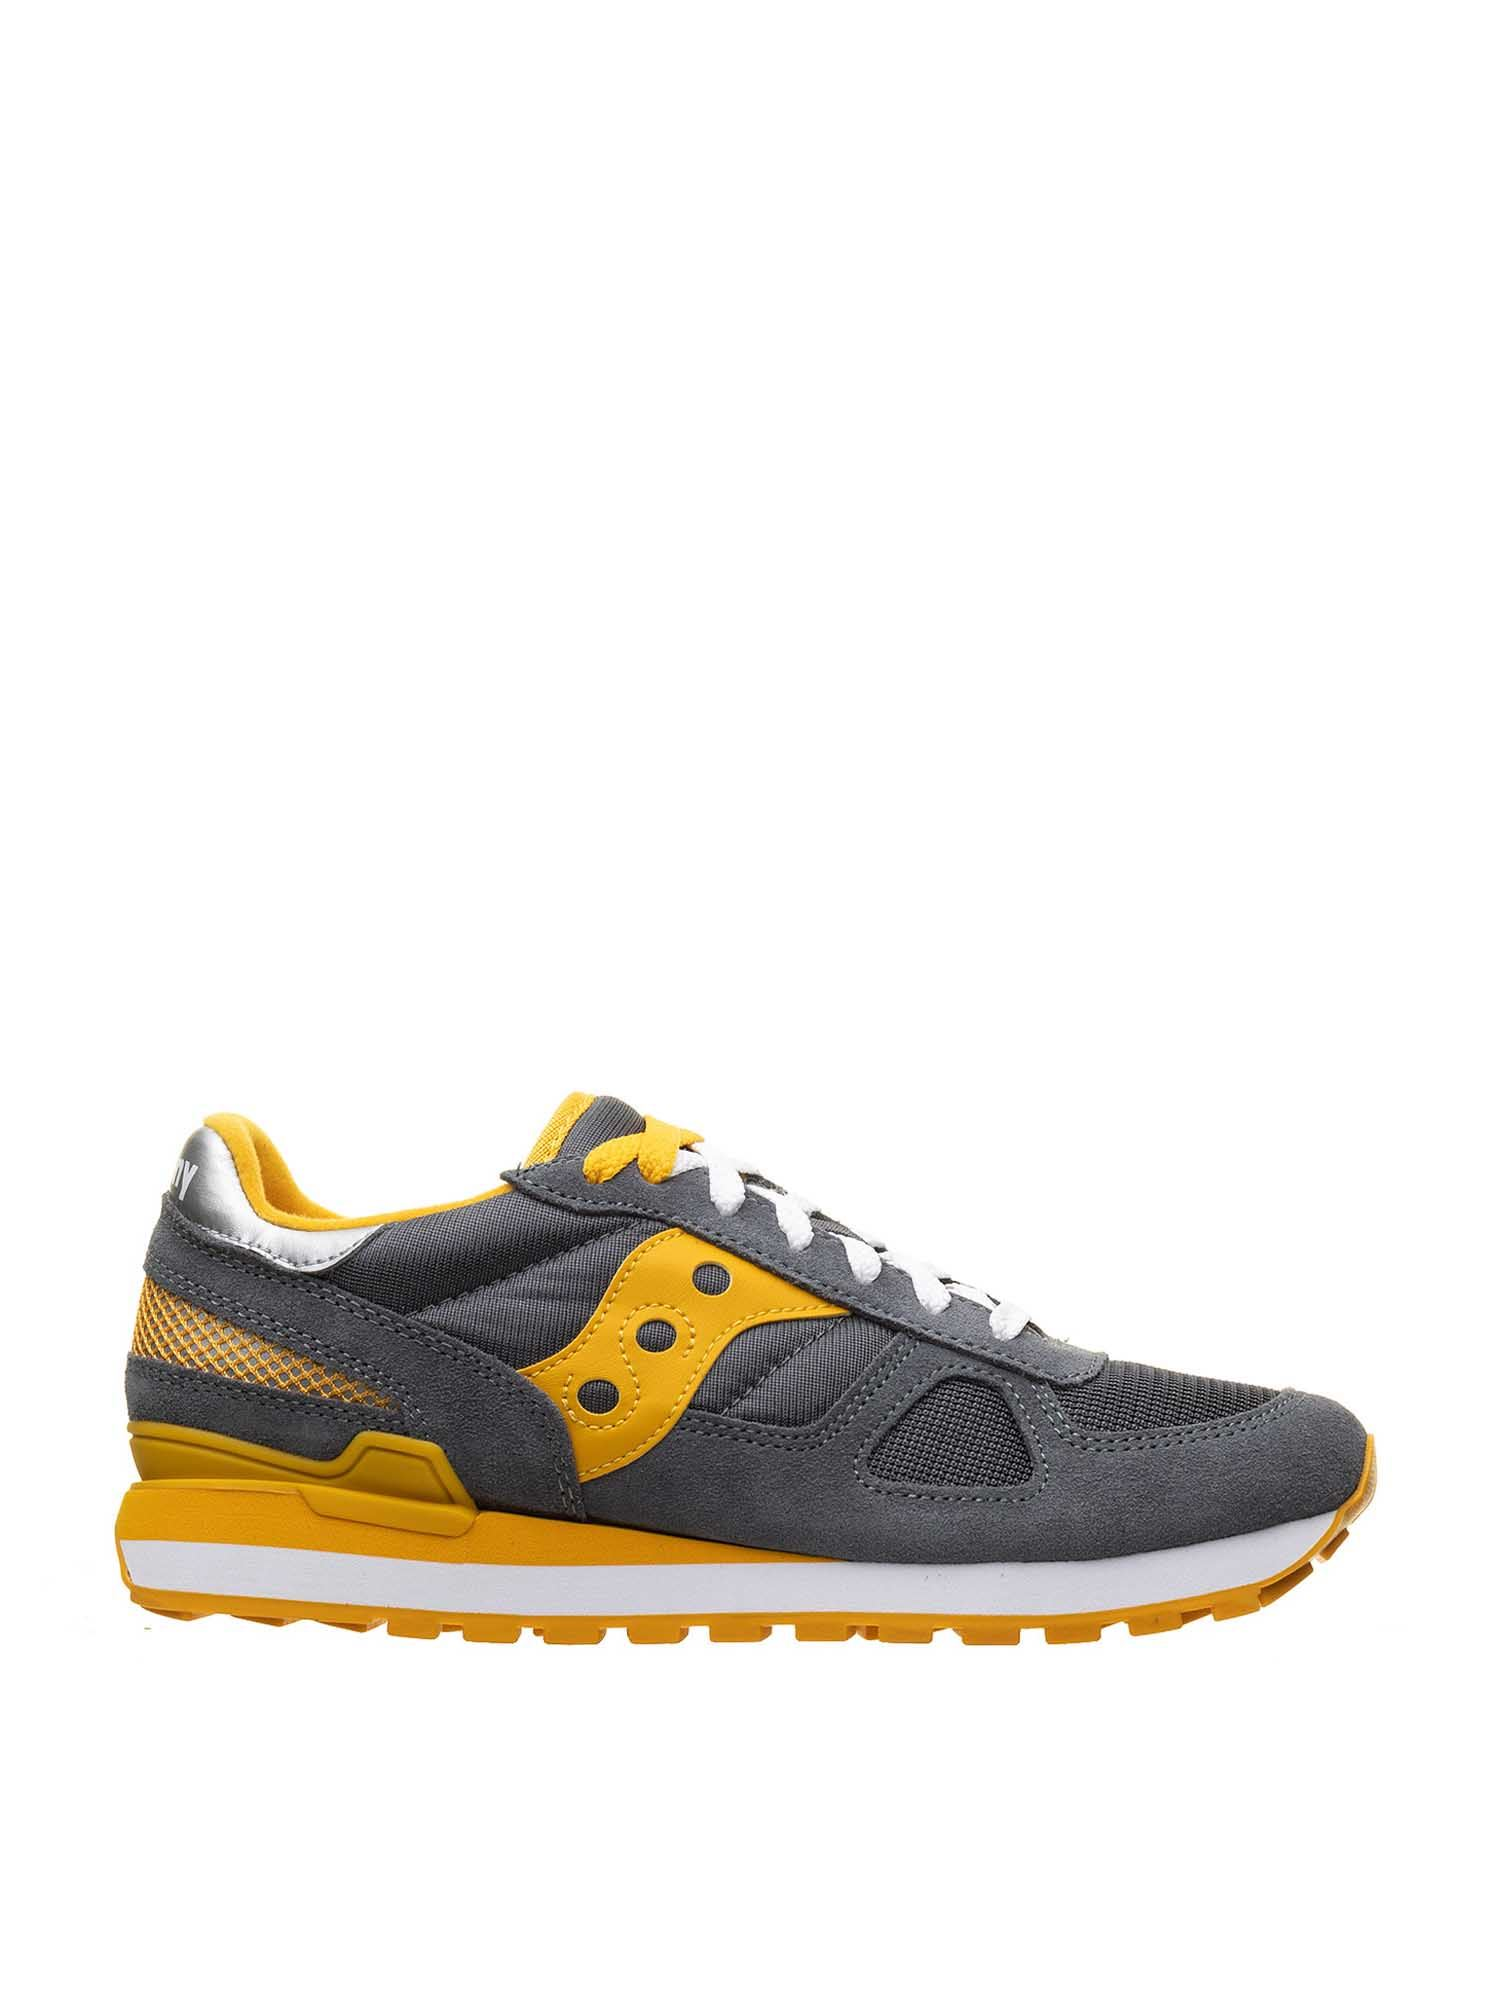 Saucony SHADOW ORIGINAL SNEAKERS IN GRAY AND YELLOW